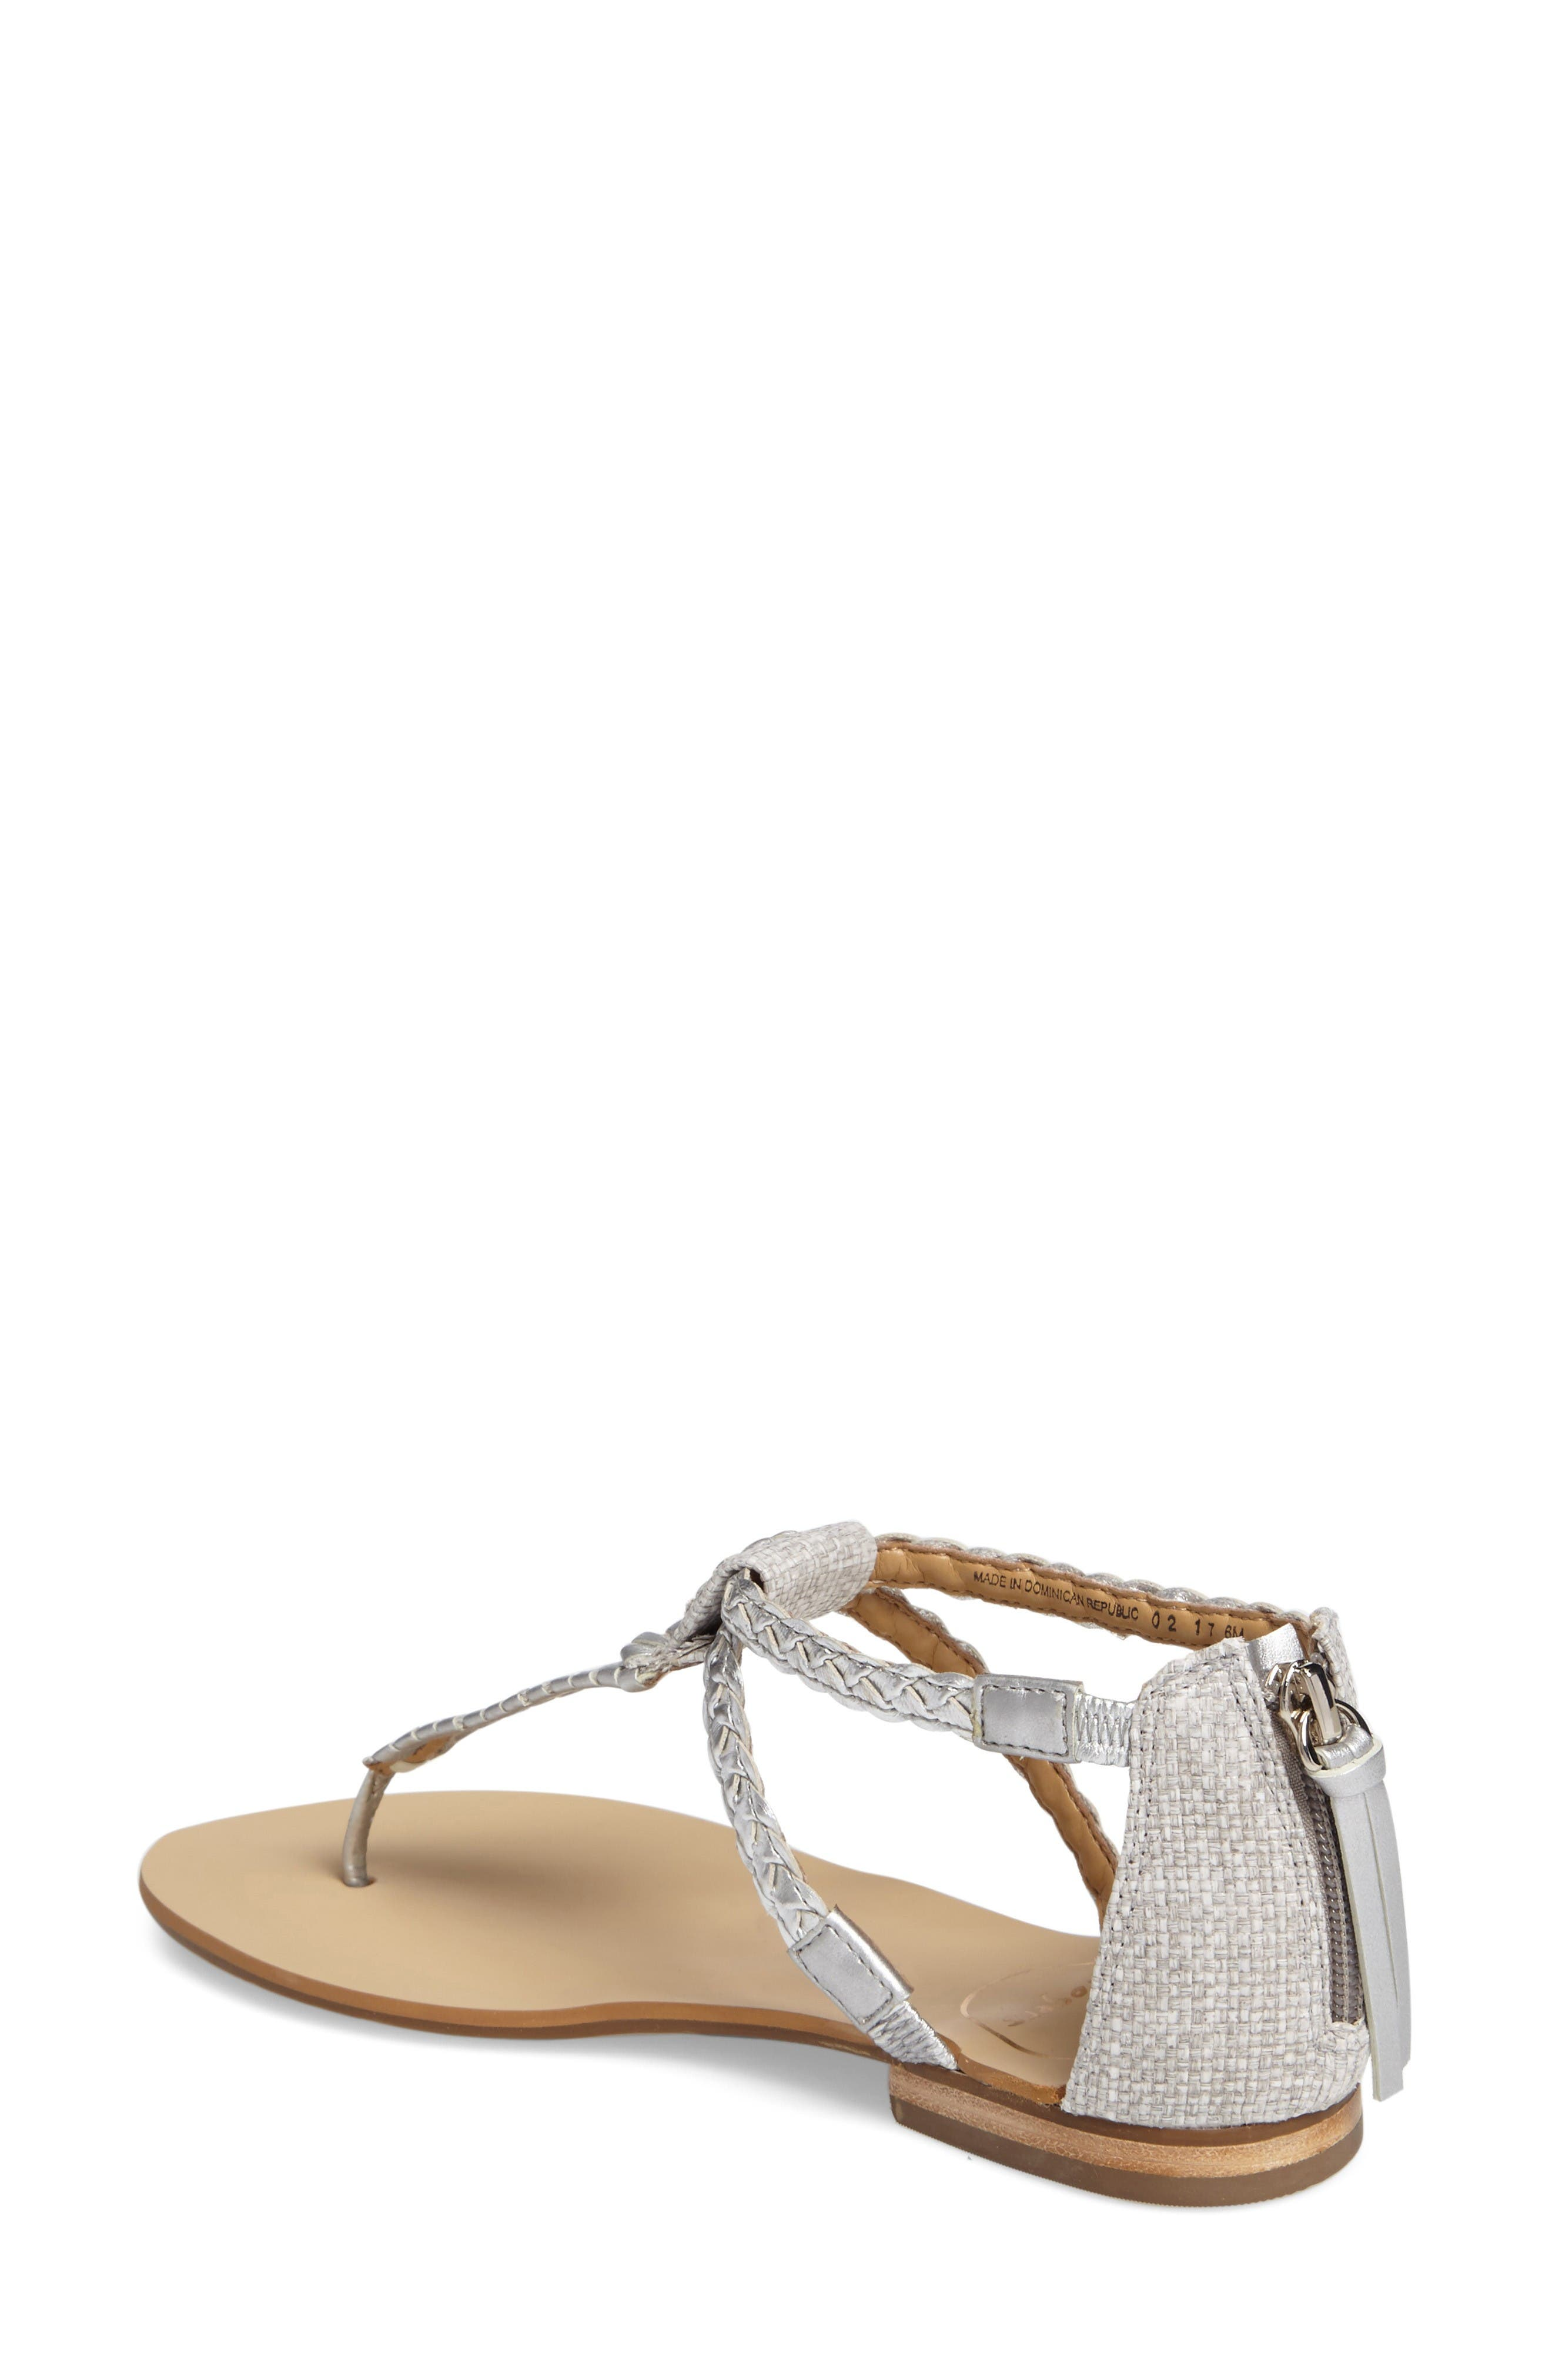 Alternate Image 2  - Jack Rogers Jenna Sandal (Women)